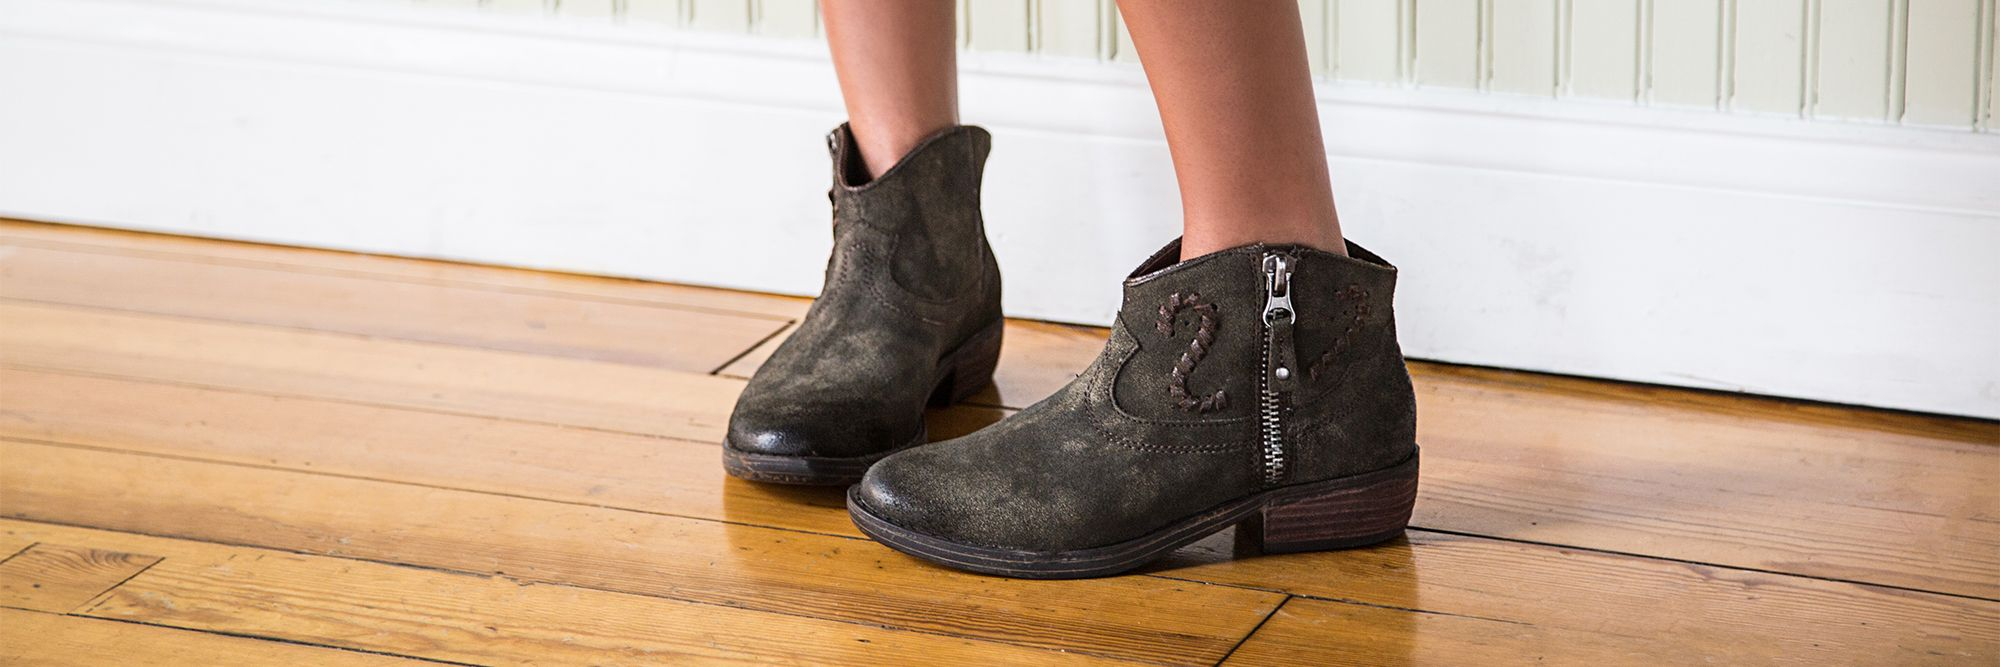 How to Style Boots for Summer